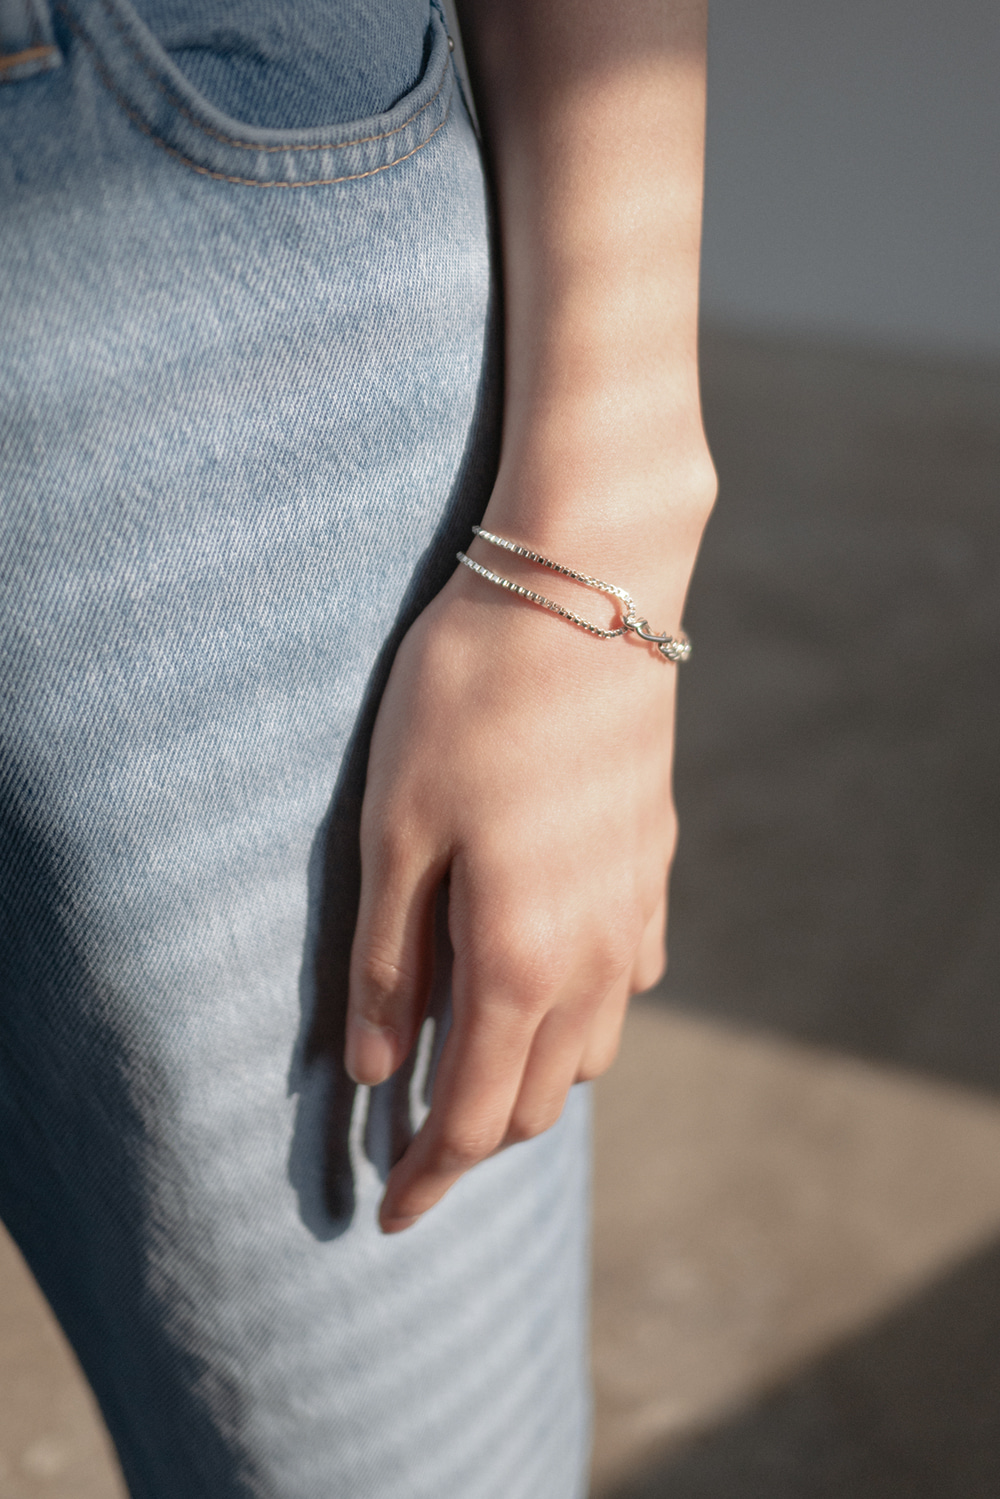 4918_Cross Chain Bracelet [ New Season / 10% DC ] 24일 PM 6 마감